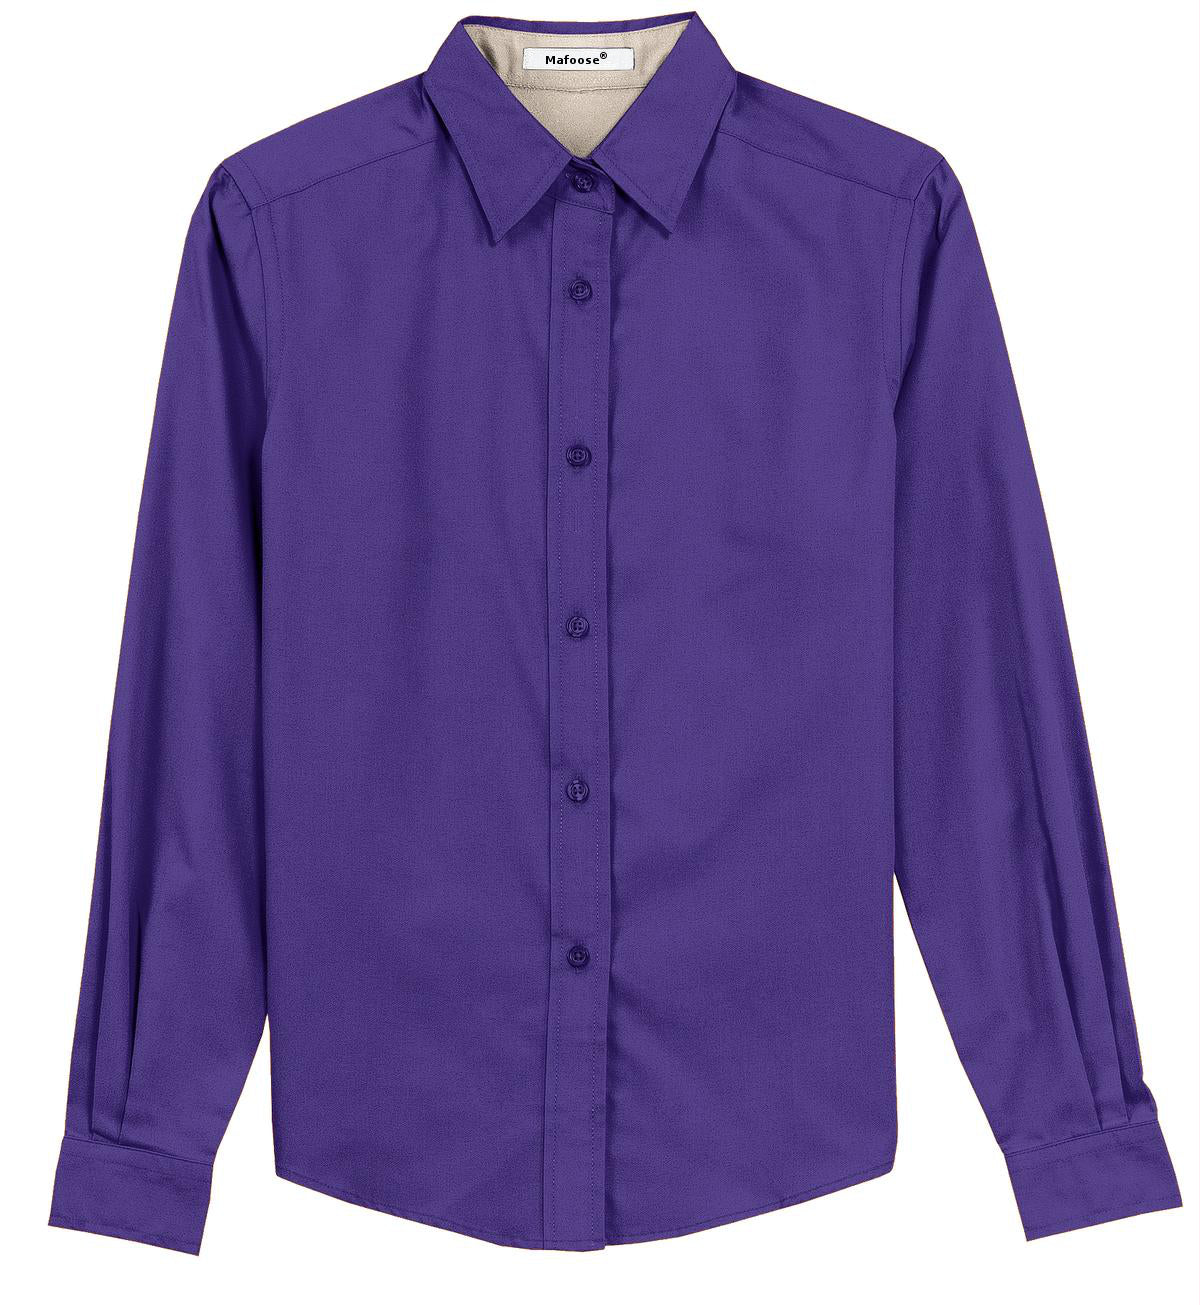 Mafoose Women's Long Sleeve Easy Care Shirt Purple/Light Stone-Front